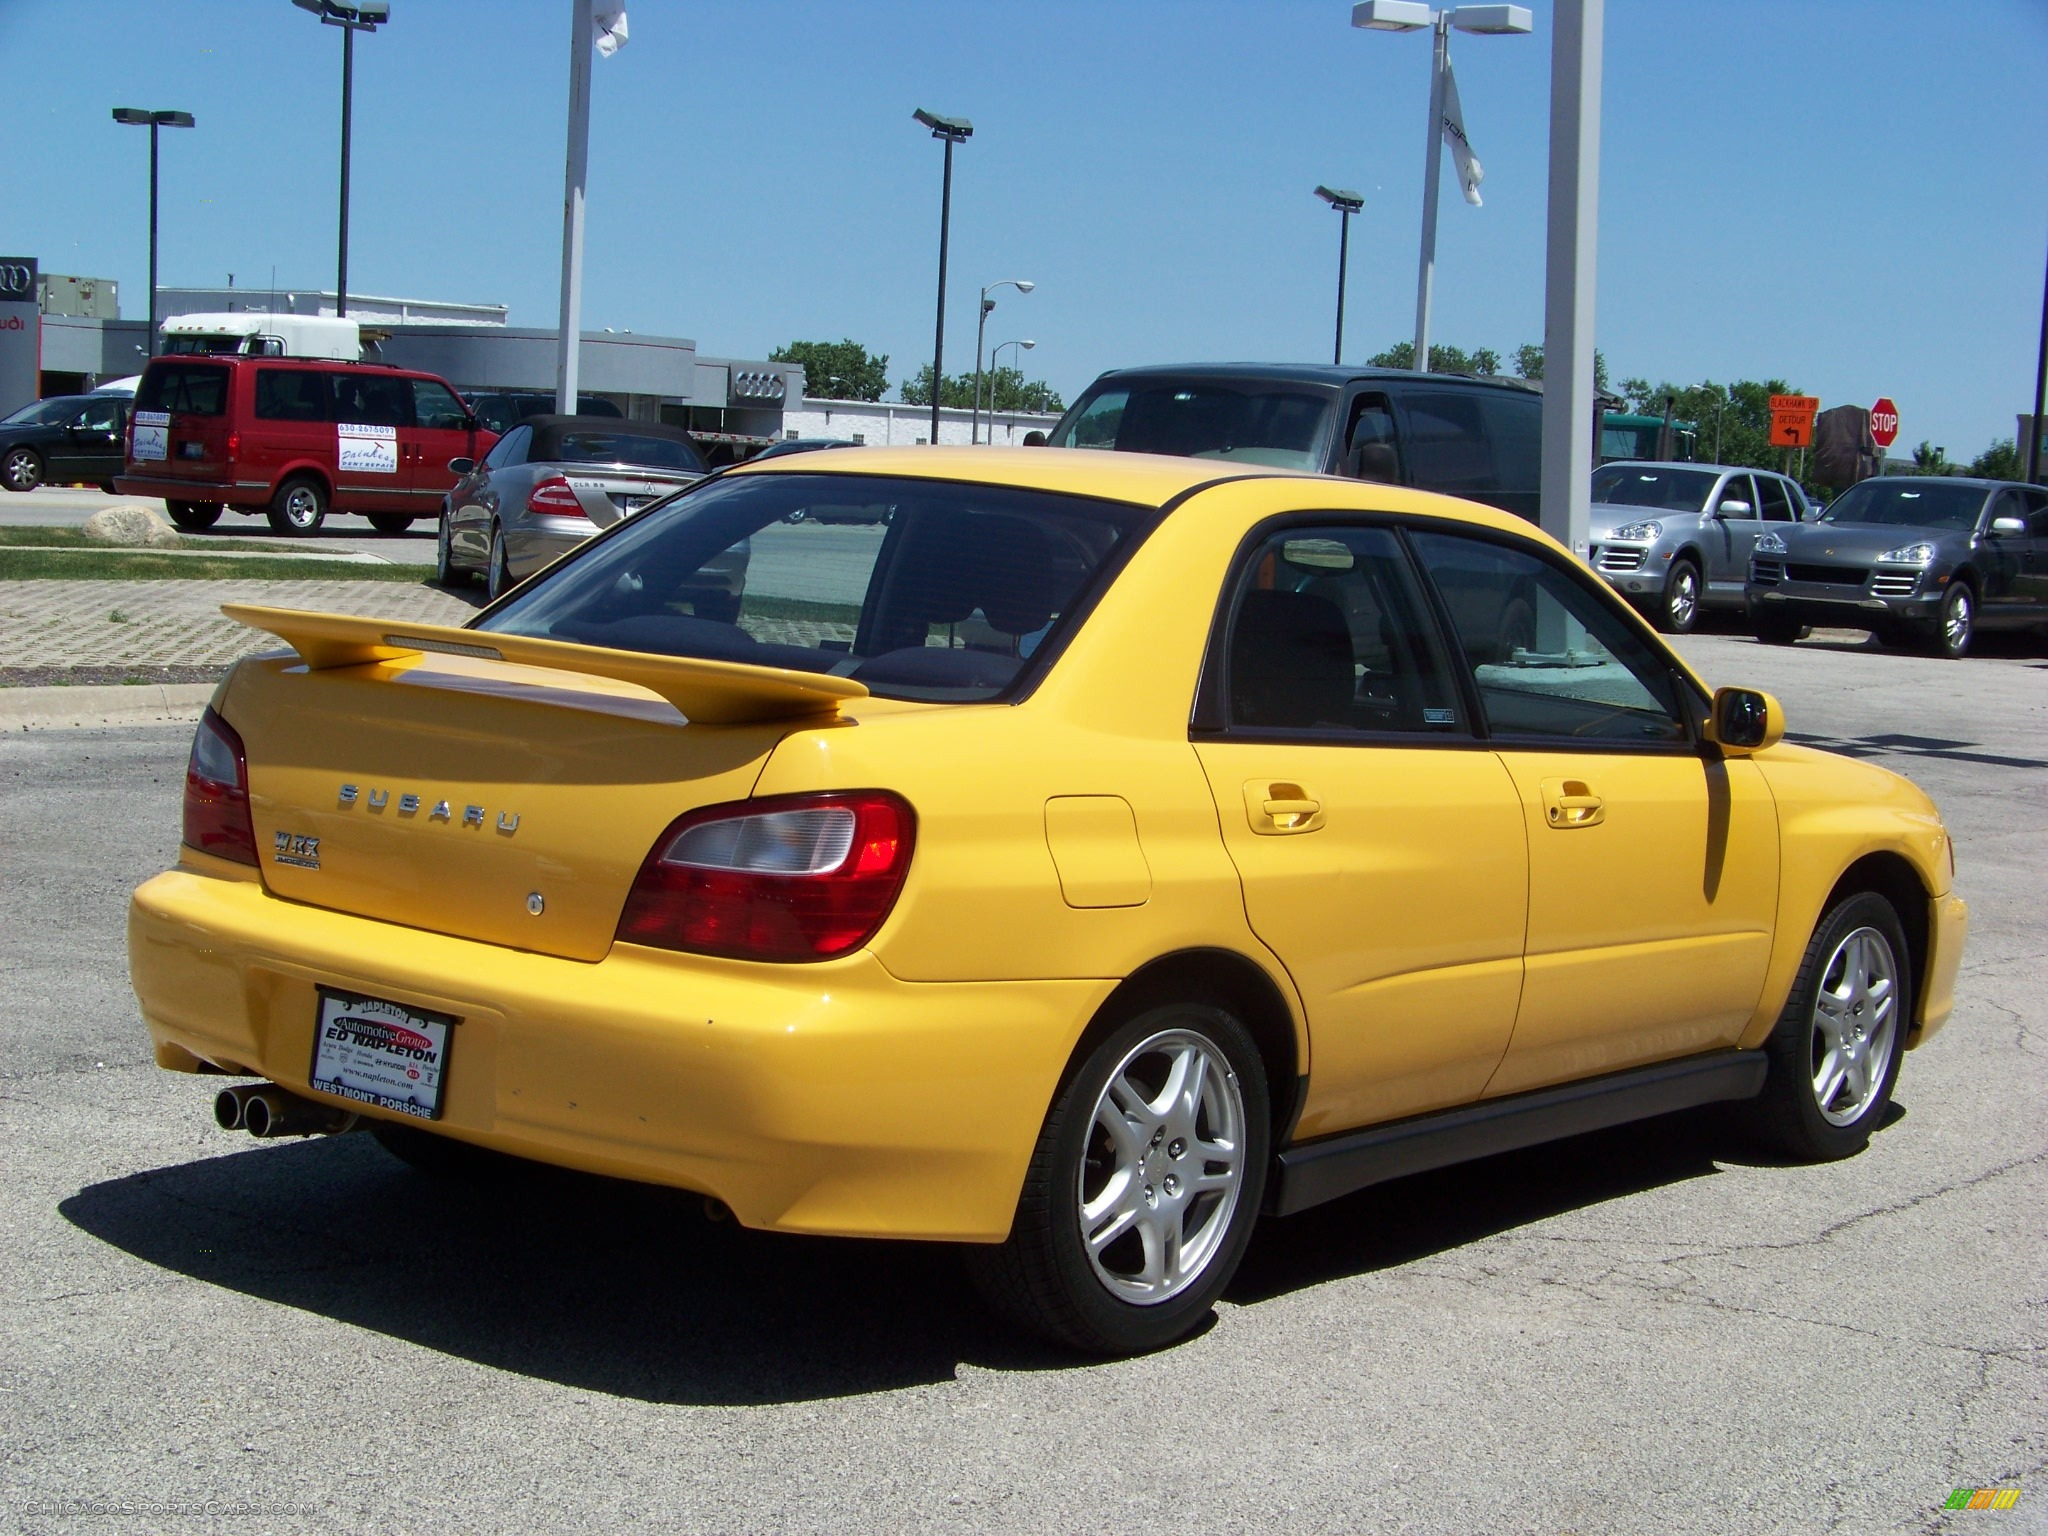 2003 Subaru Impreza WRX Sedan in Sonic Yellow photo #5 ...